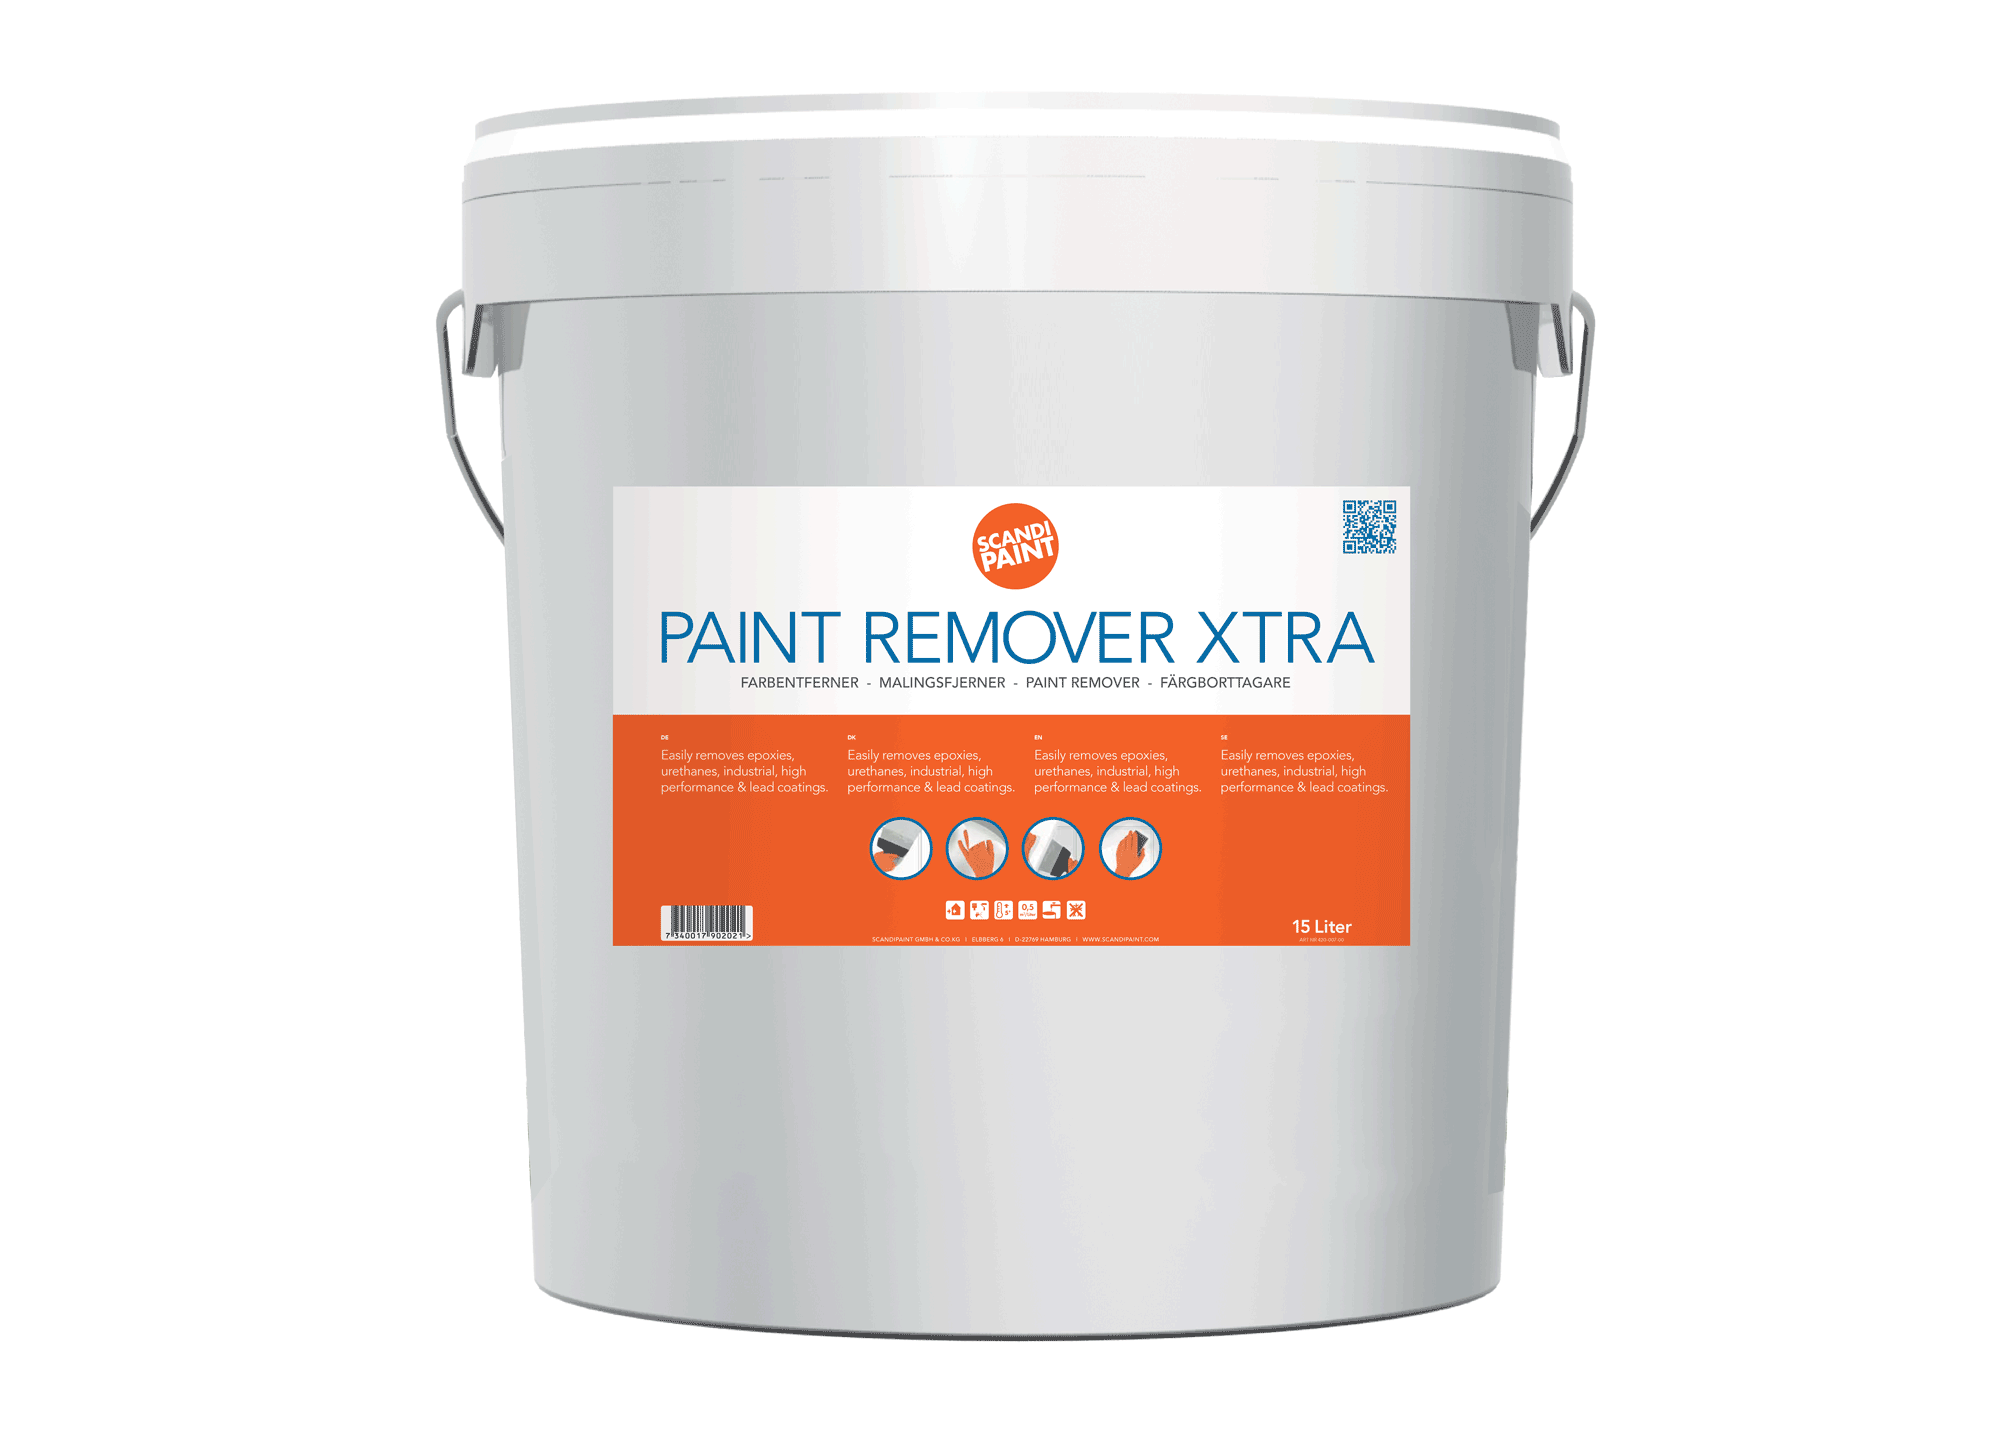 SP-Paint-Remover-XTRA.png